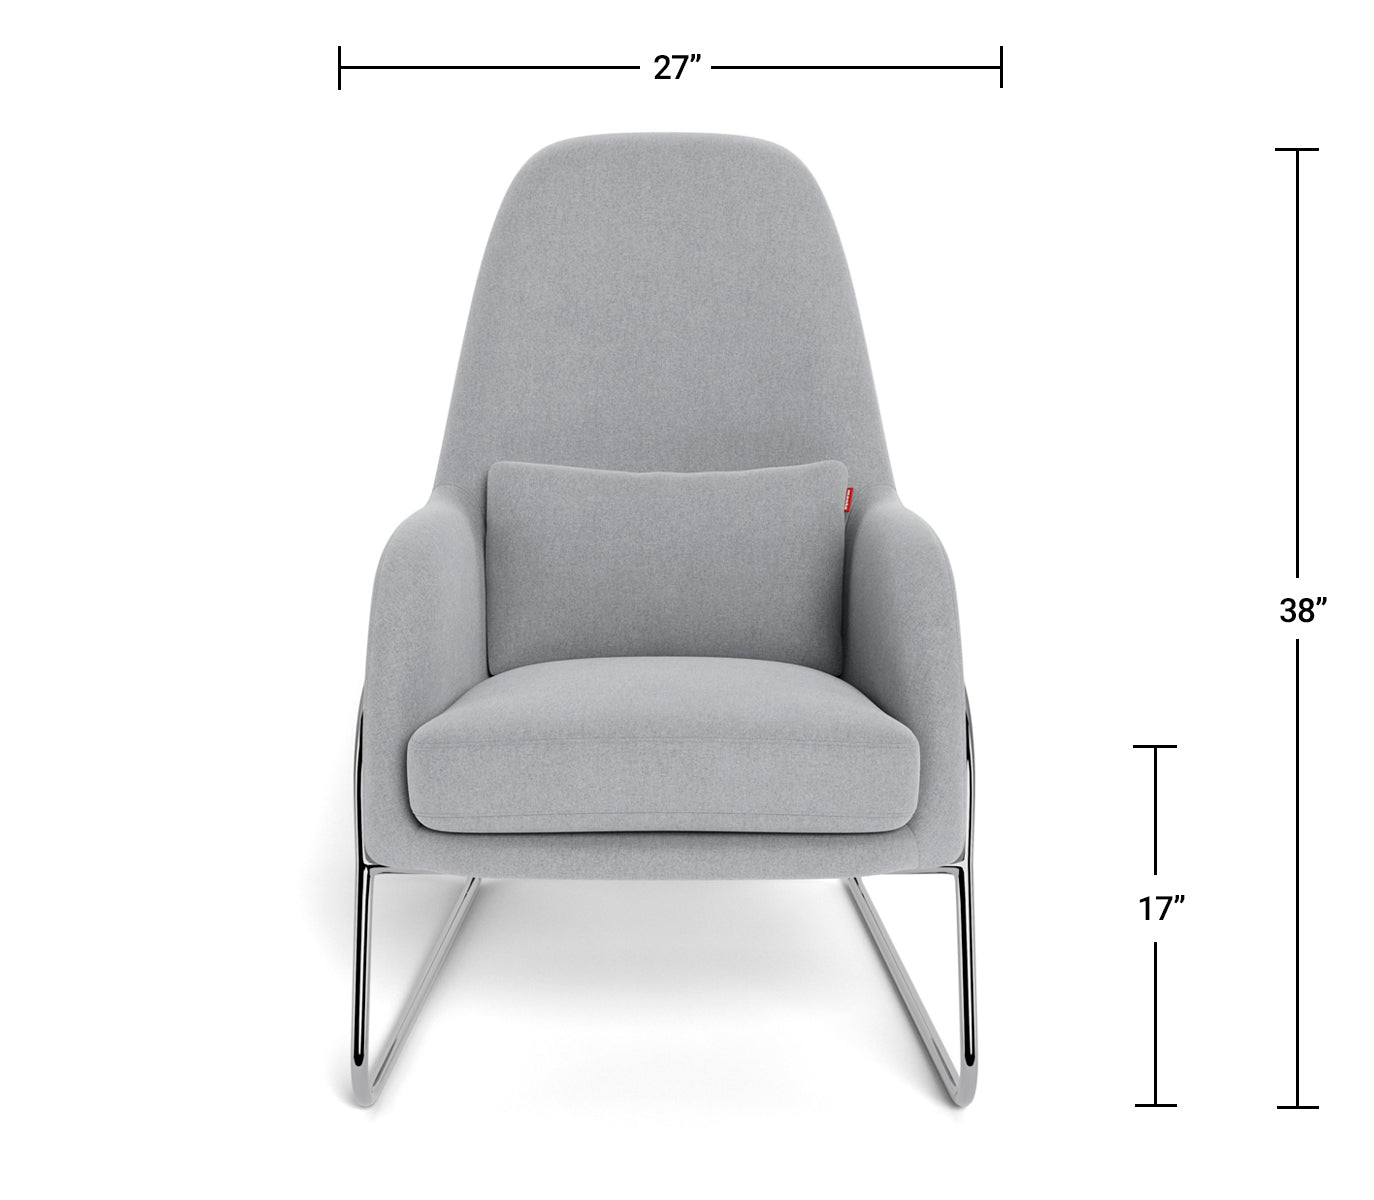 Modern Lounge Chair - Jackson Lounge Dimensions Front View